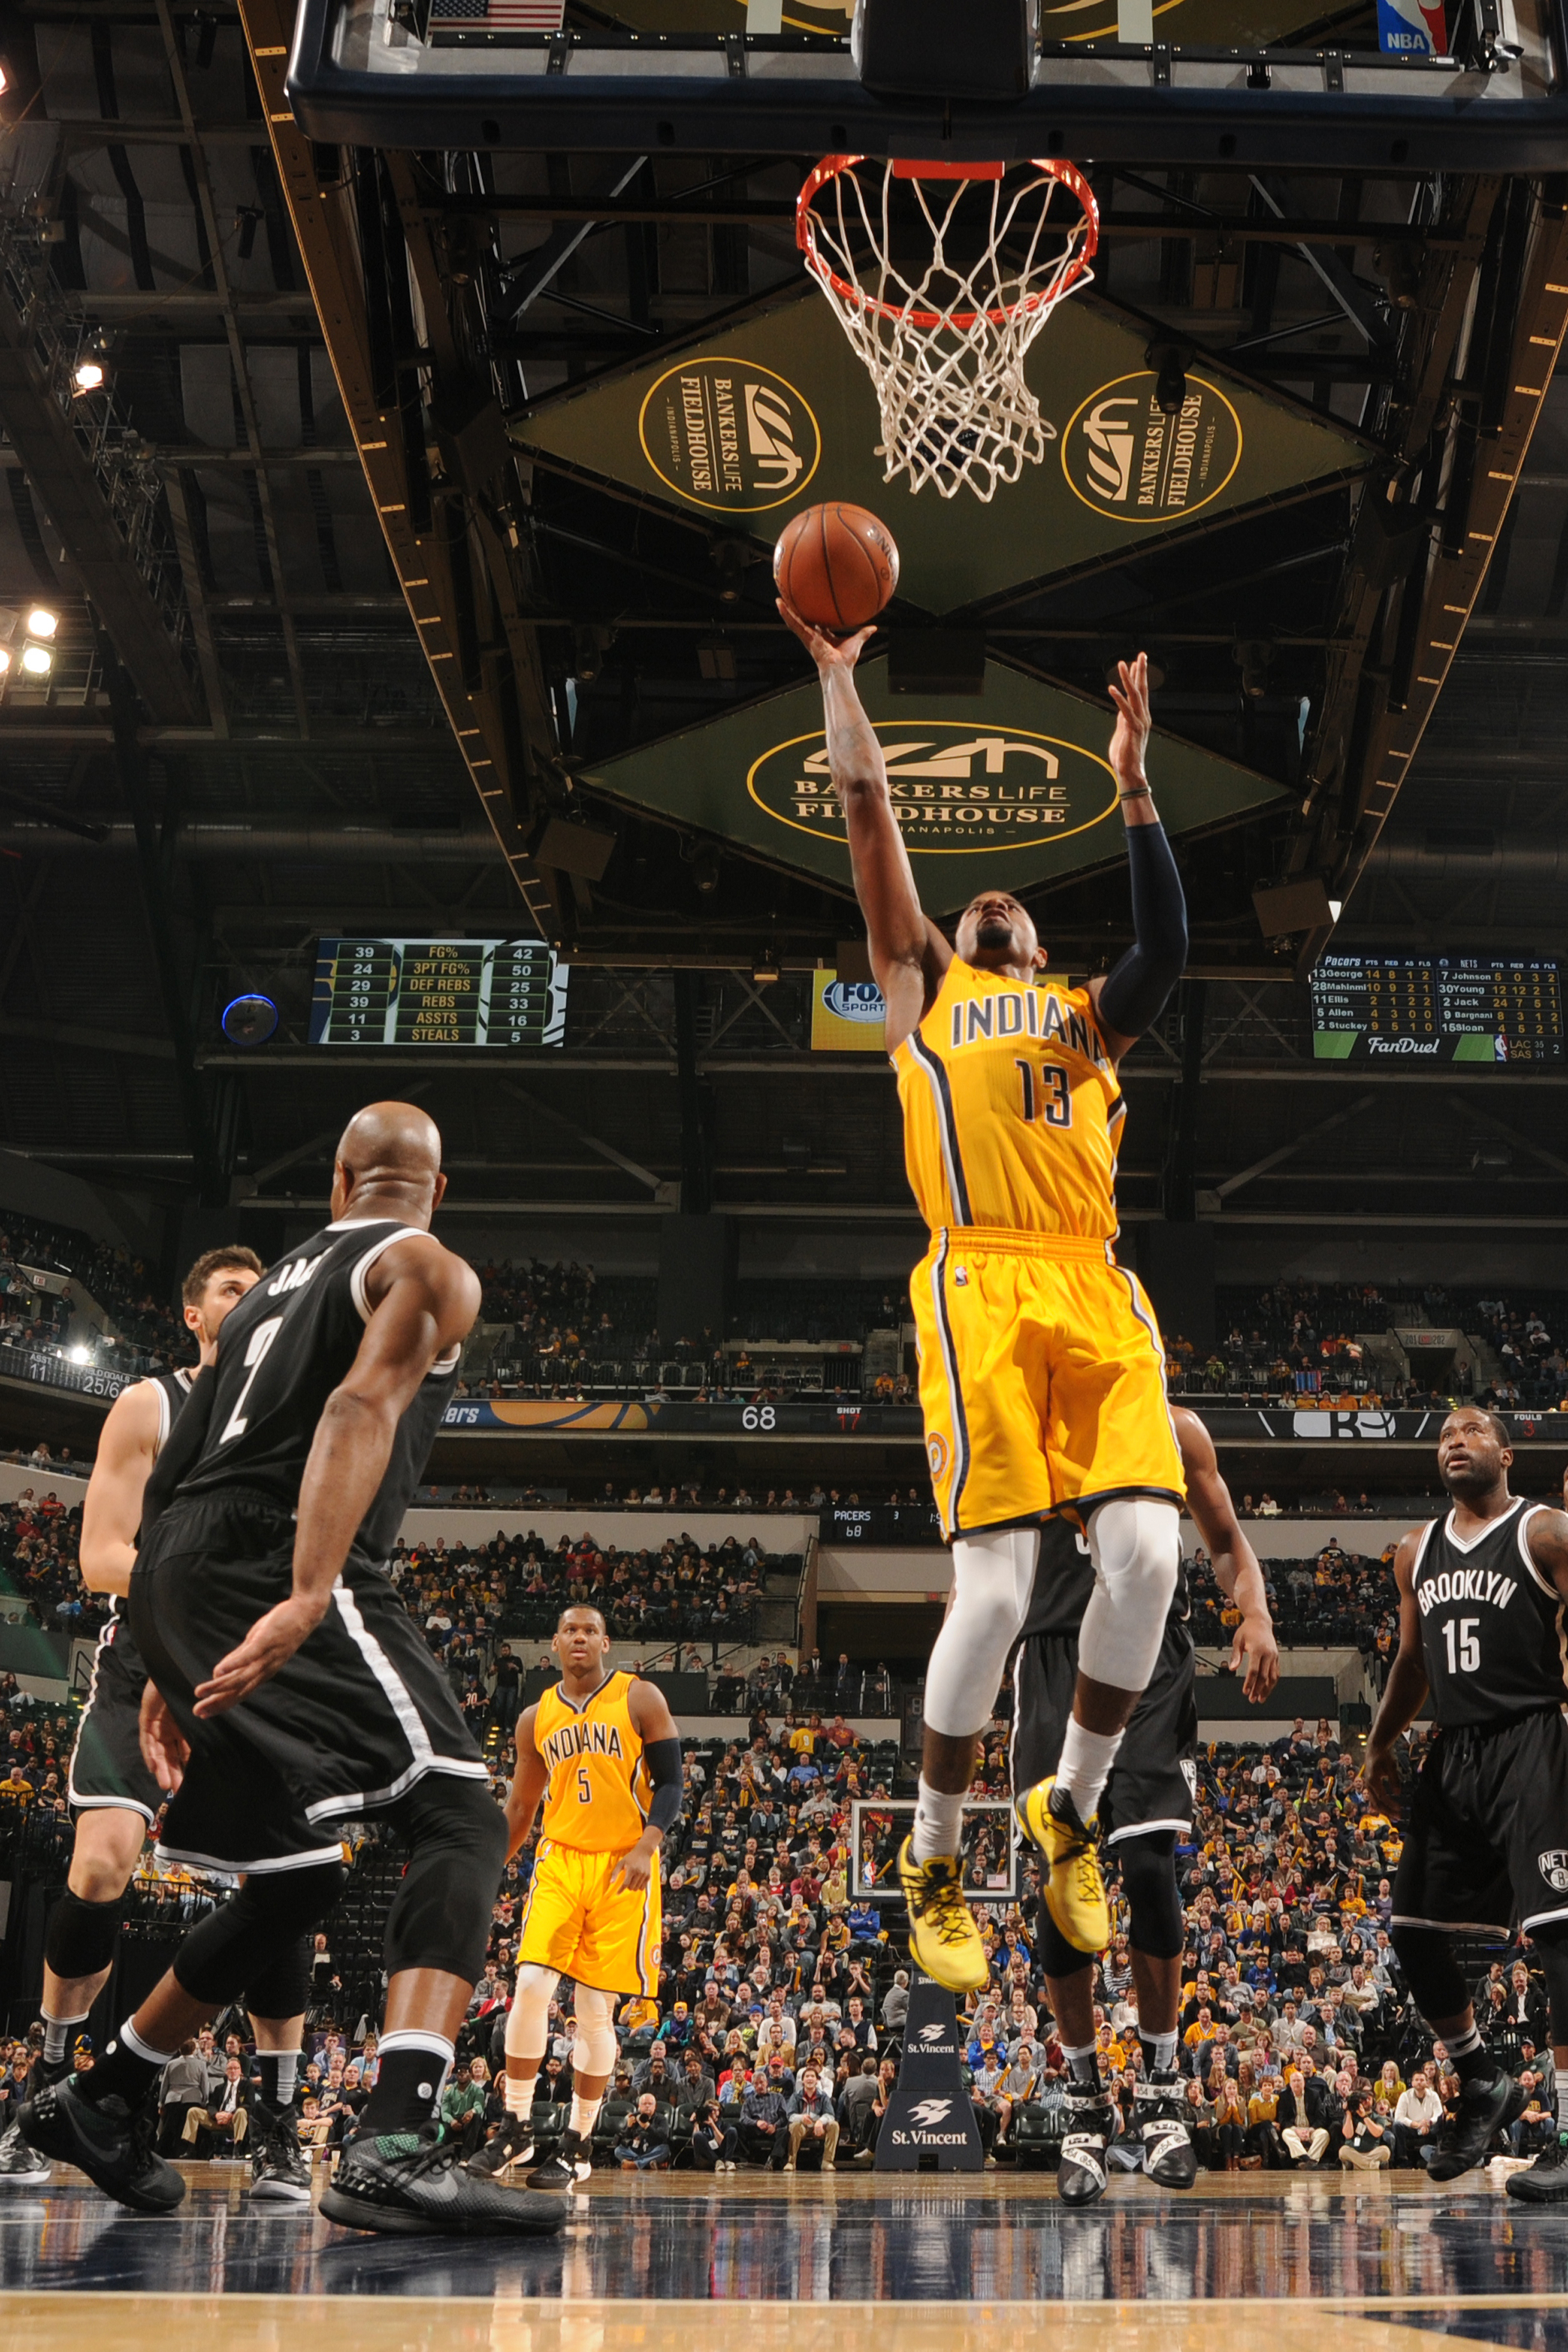 INDIANAPOLIS, IN - DECEMBER 18: Paul George #13 of the Indiana Pacers shoots the ball against the Brooklyn Nets on December 18, 2015 at Bankers Life Fieldhouse in Indianapolis, Indiana. (Photo by Ron Hoskins/NBAE via Getty Images)